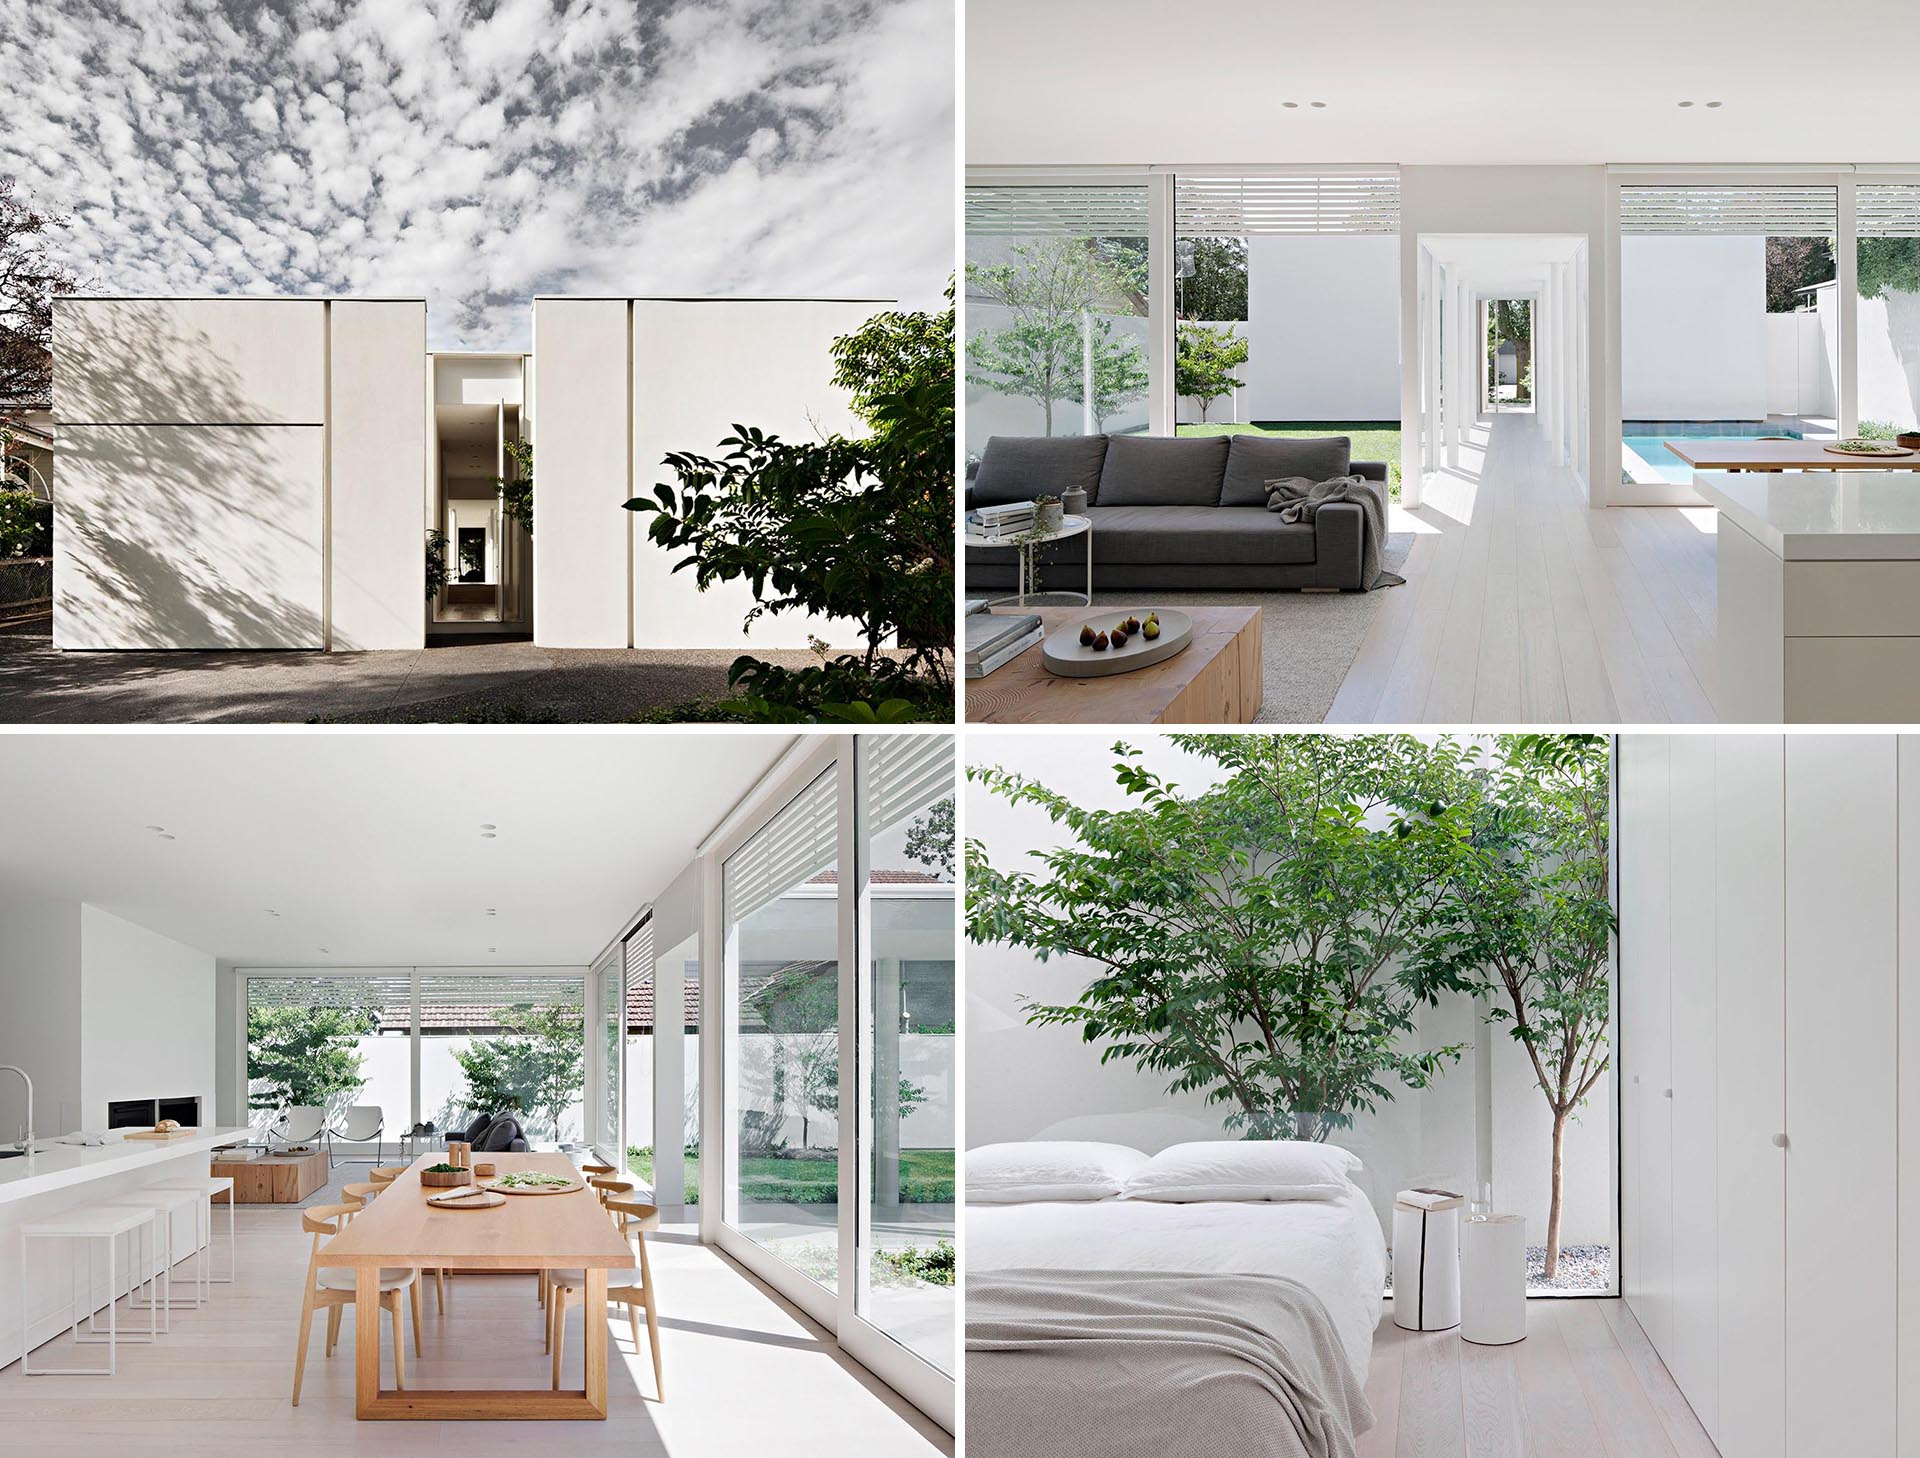 A modern house with a white exterior, and a matching bright white interior.